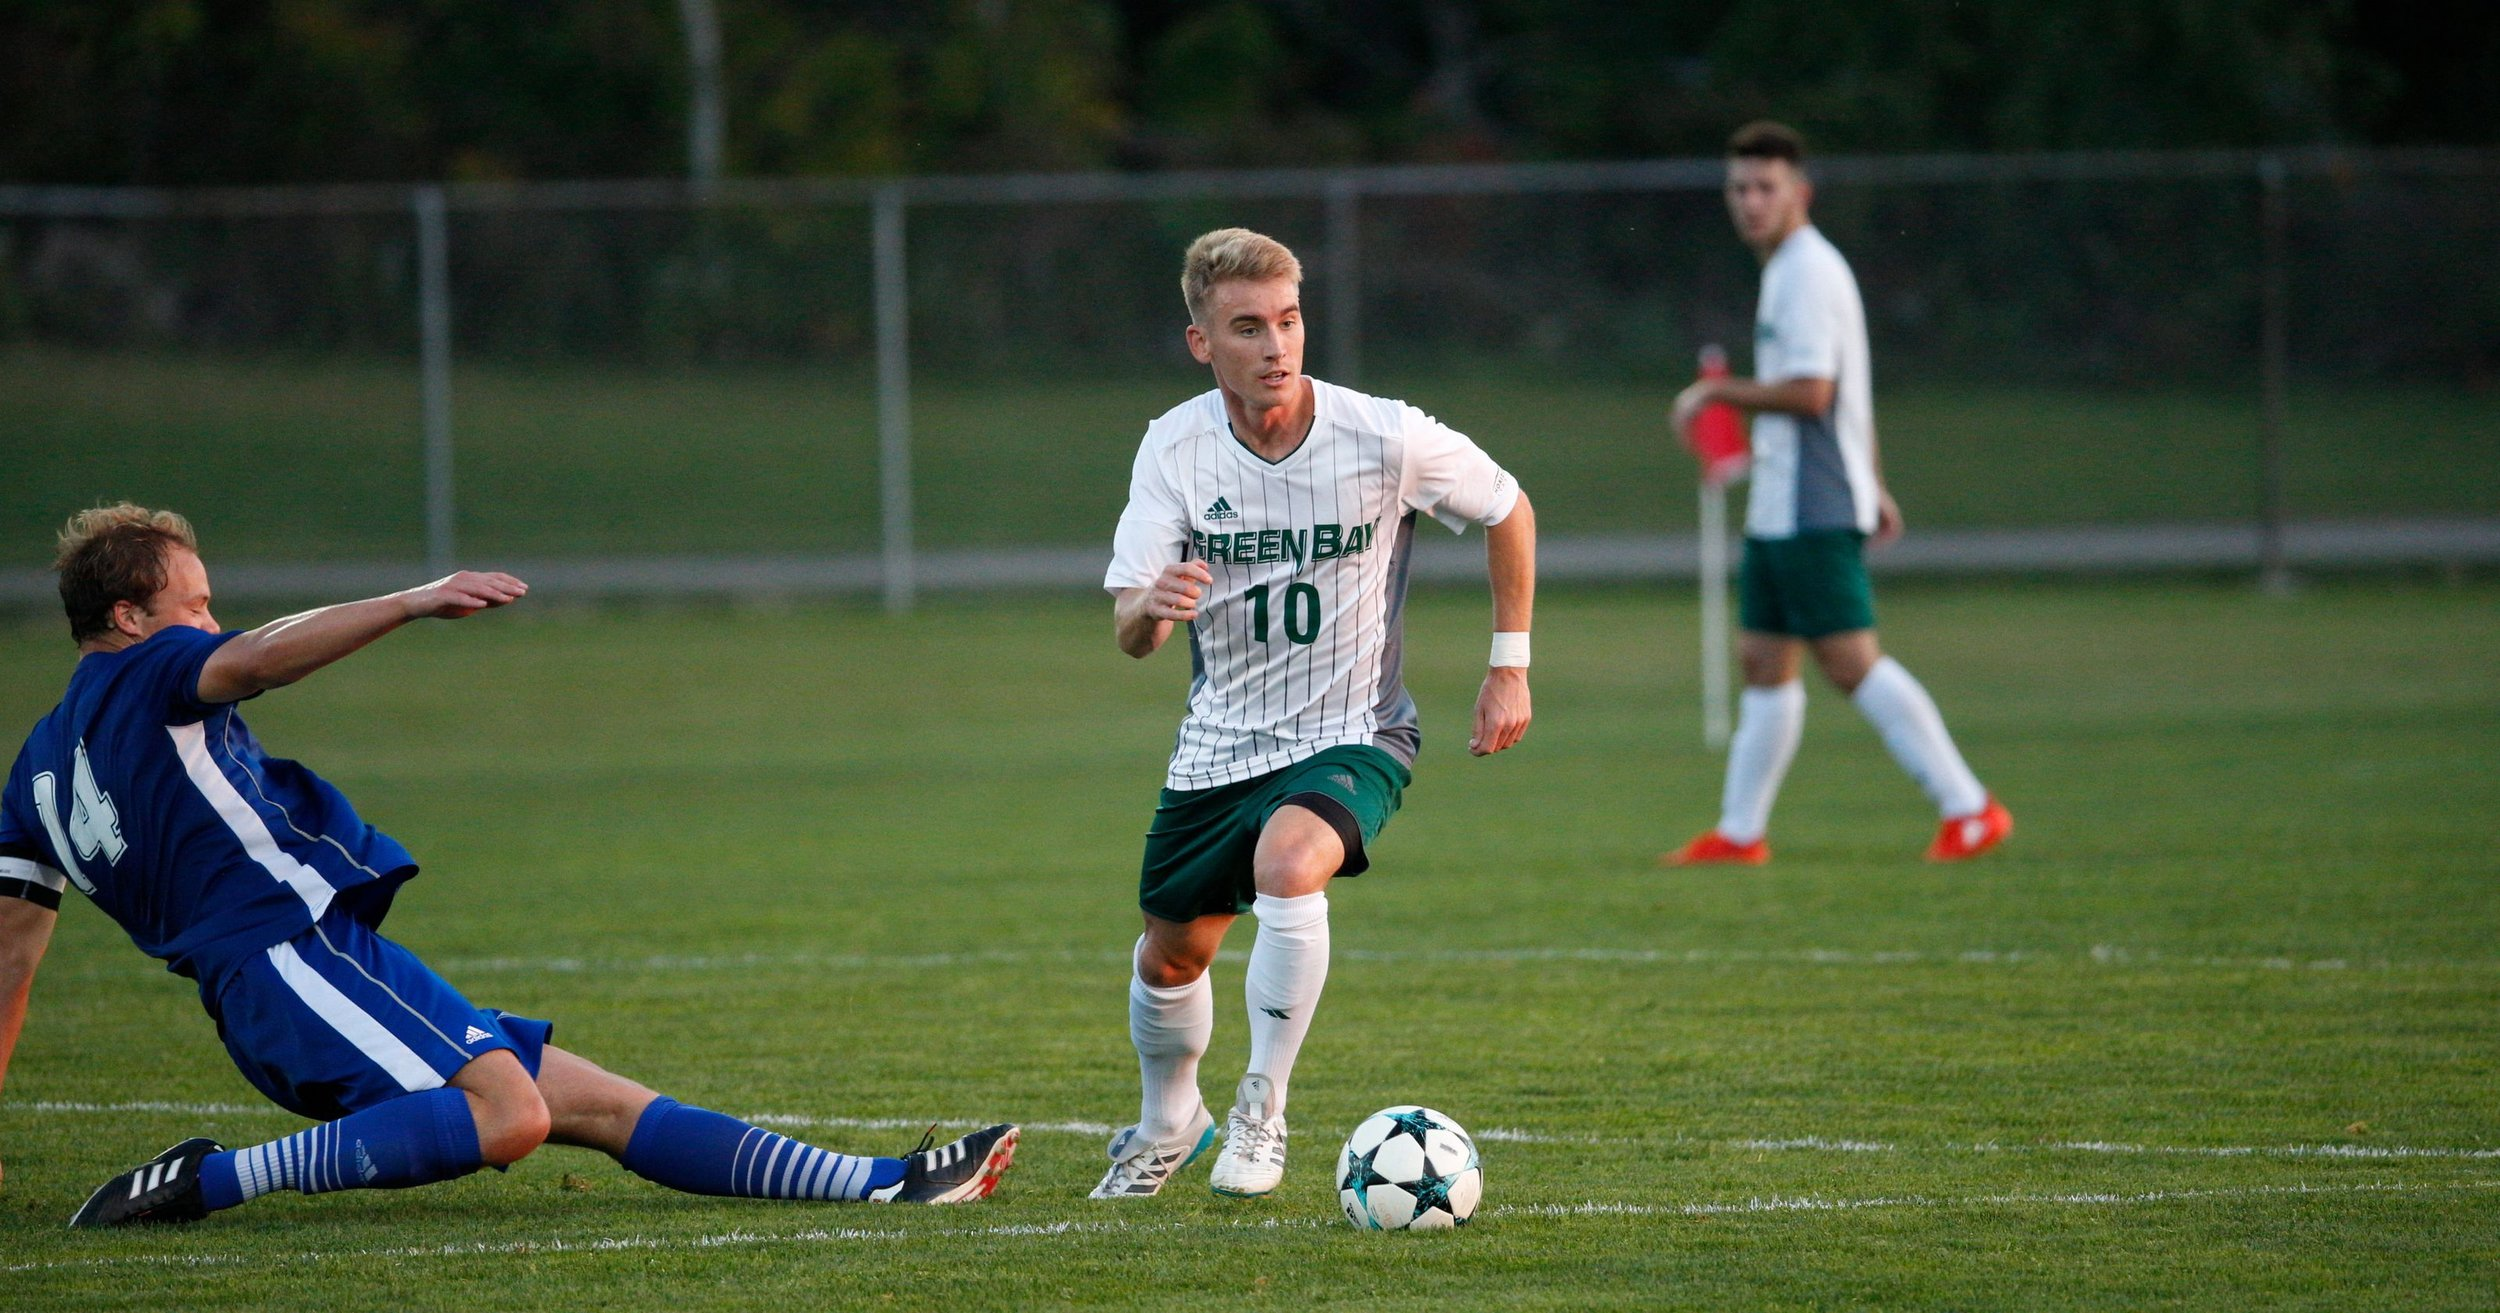 Horizon League Offensive Player of the Year 2017  Leading Scorer for UWGB with 11 Goals, 5 assists (19 points)